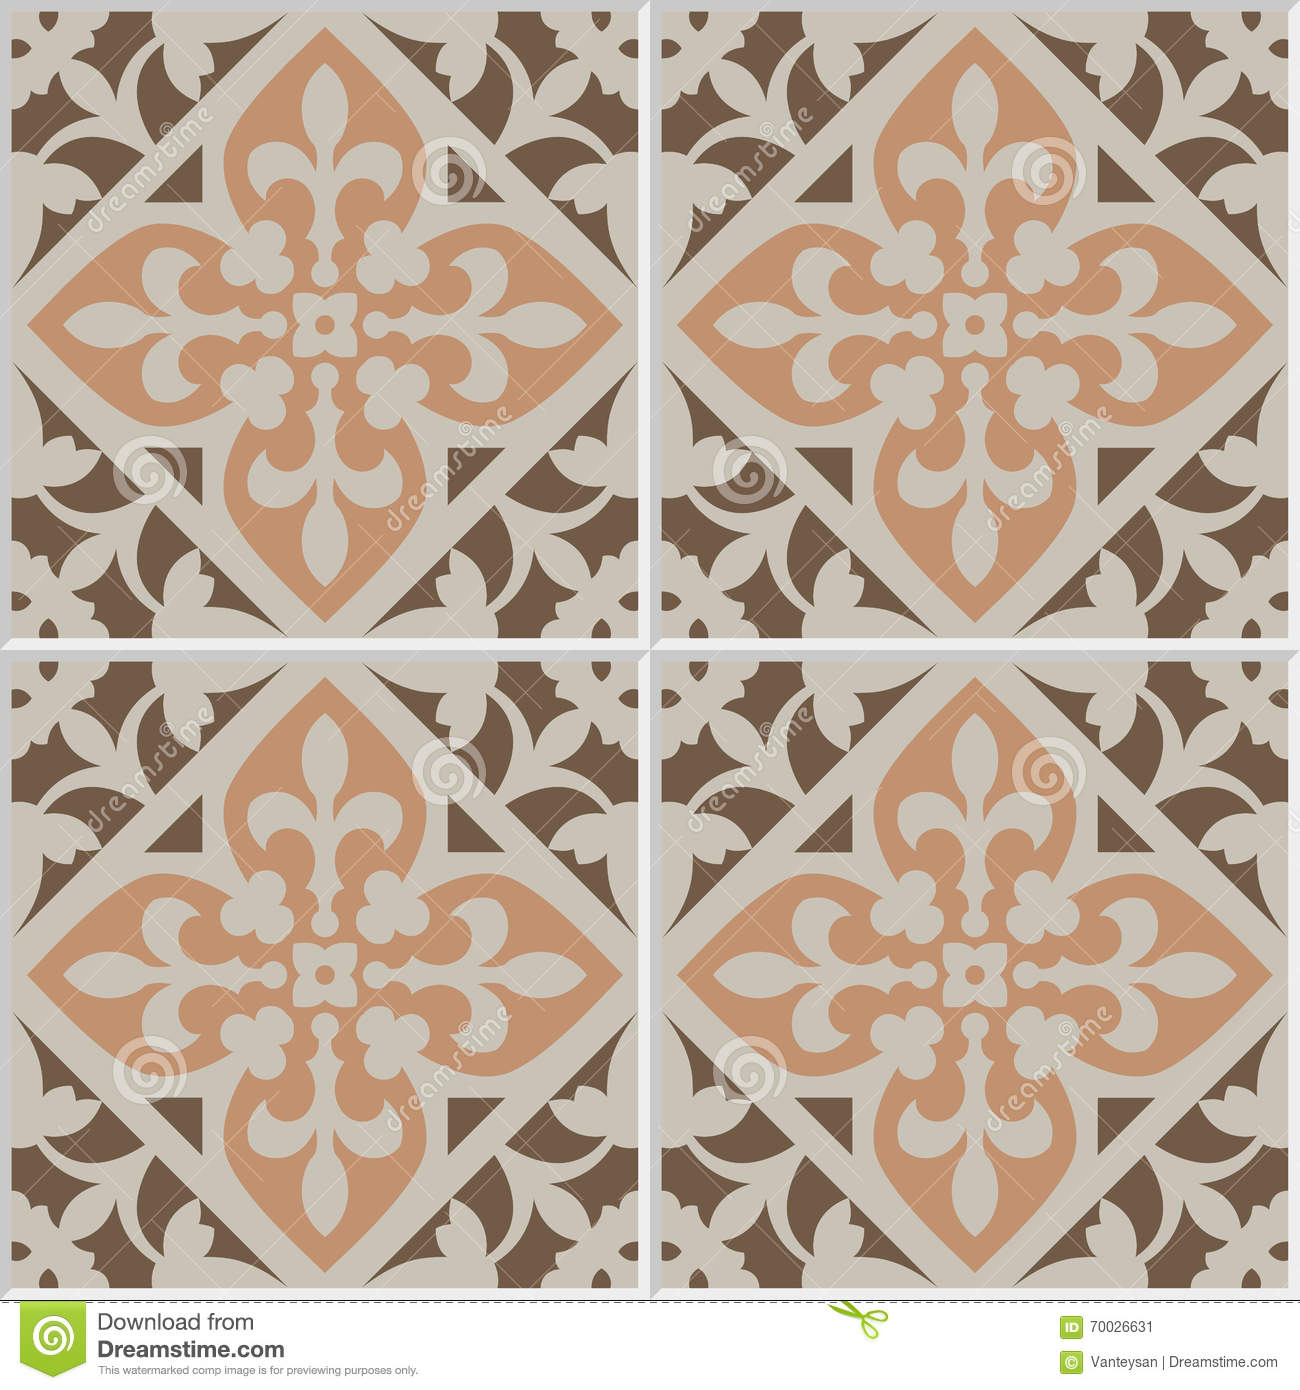 Vintage ceramic mosaic floor tile seamless pattern stock vector vintage ceramic mosaic floor tile seamless pattern doublecrazyfo Image collections